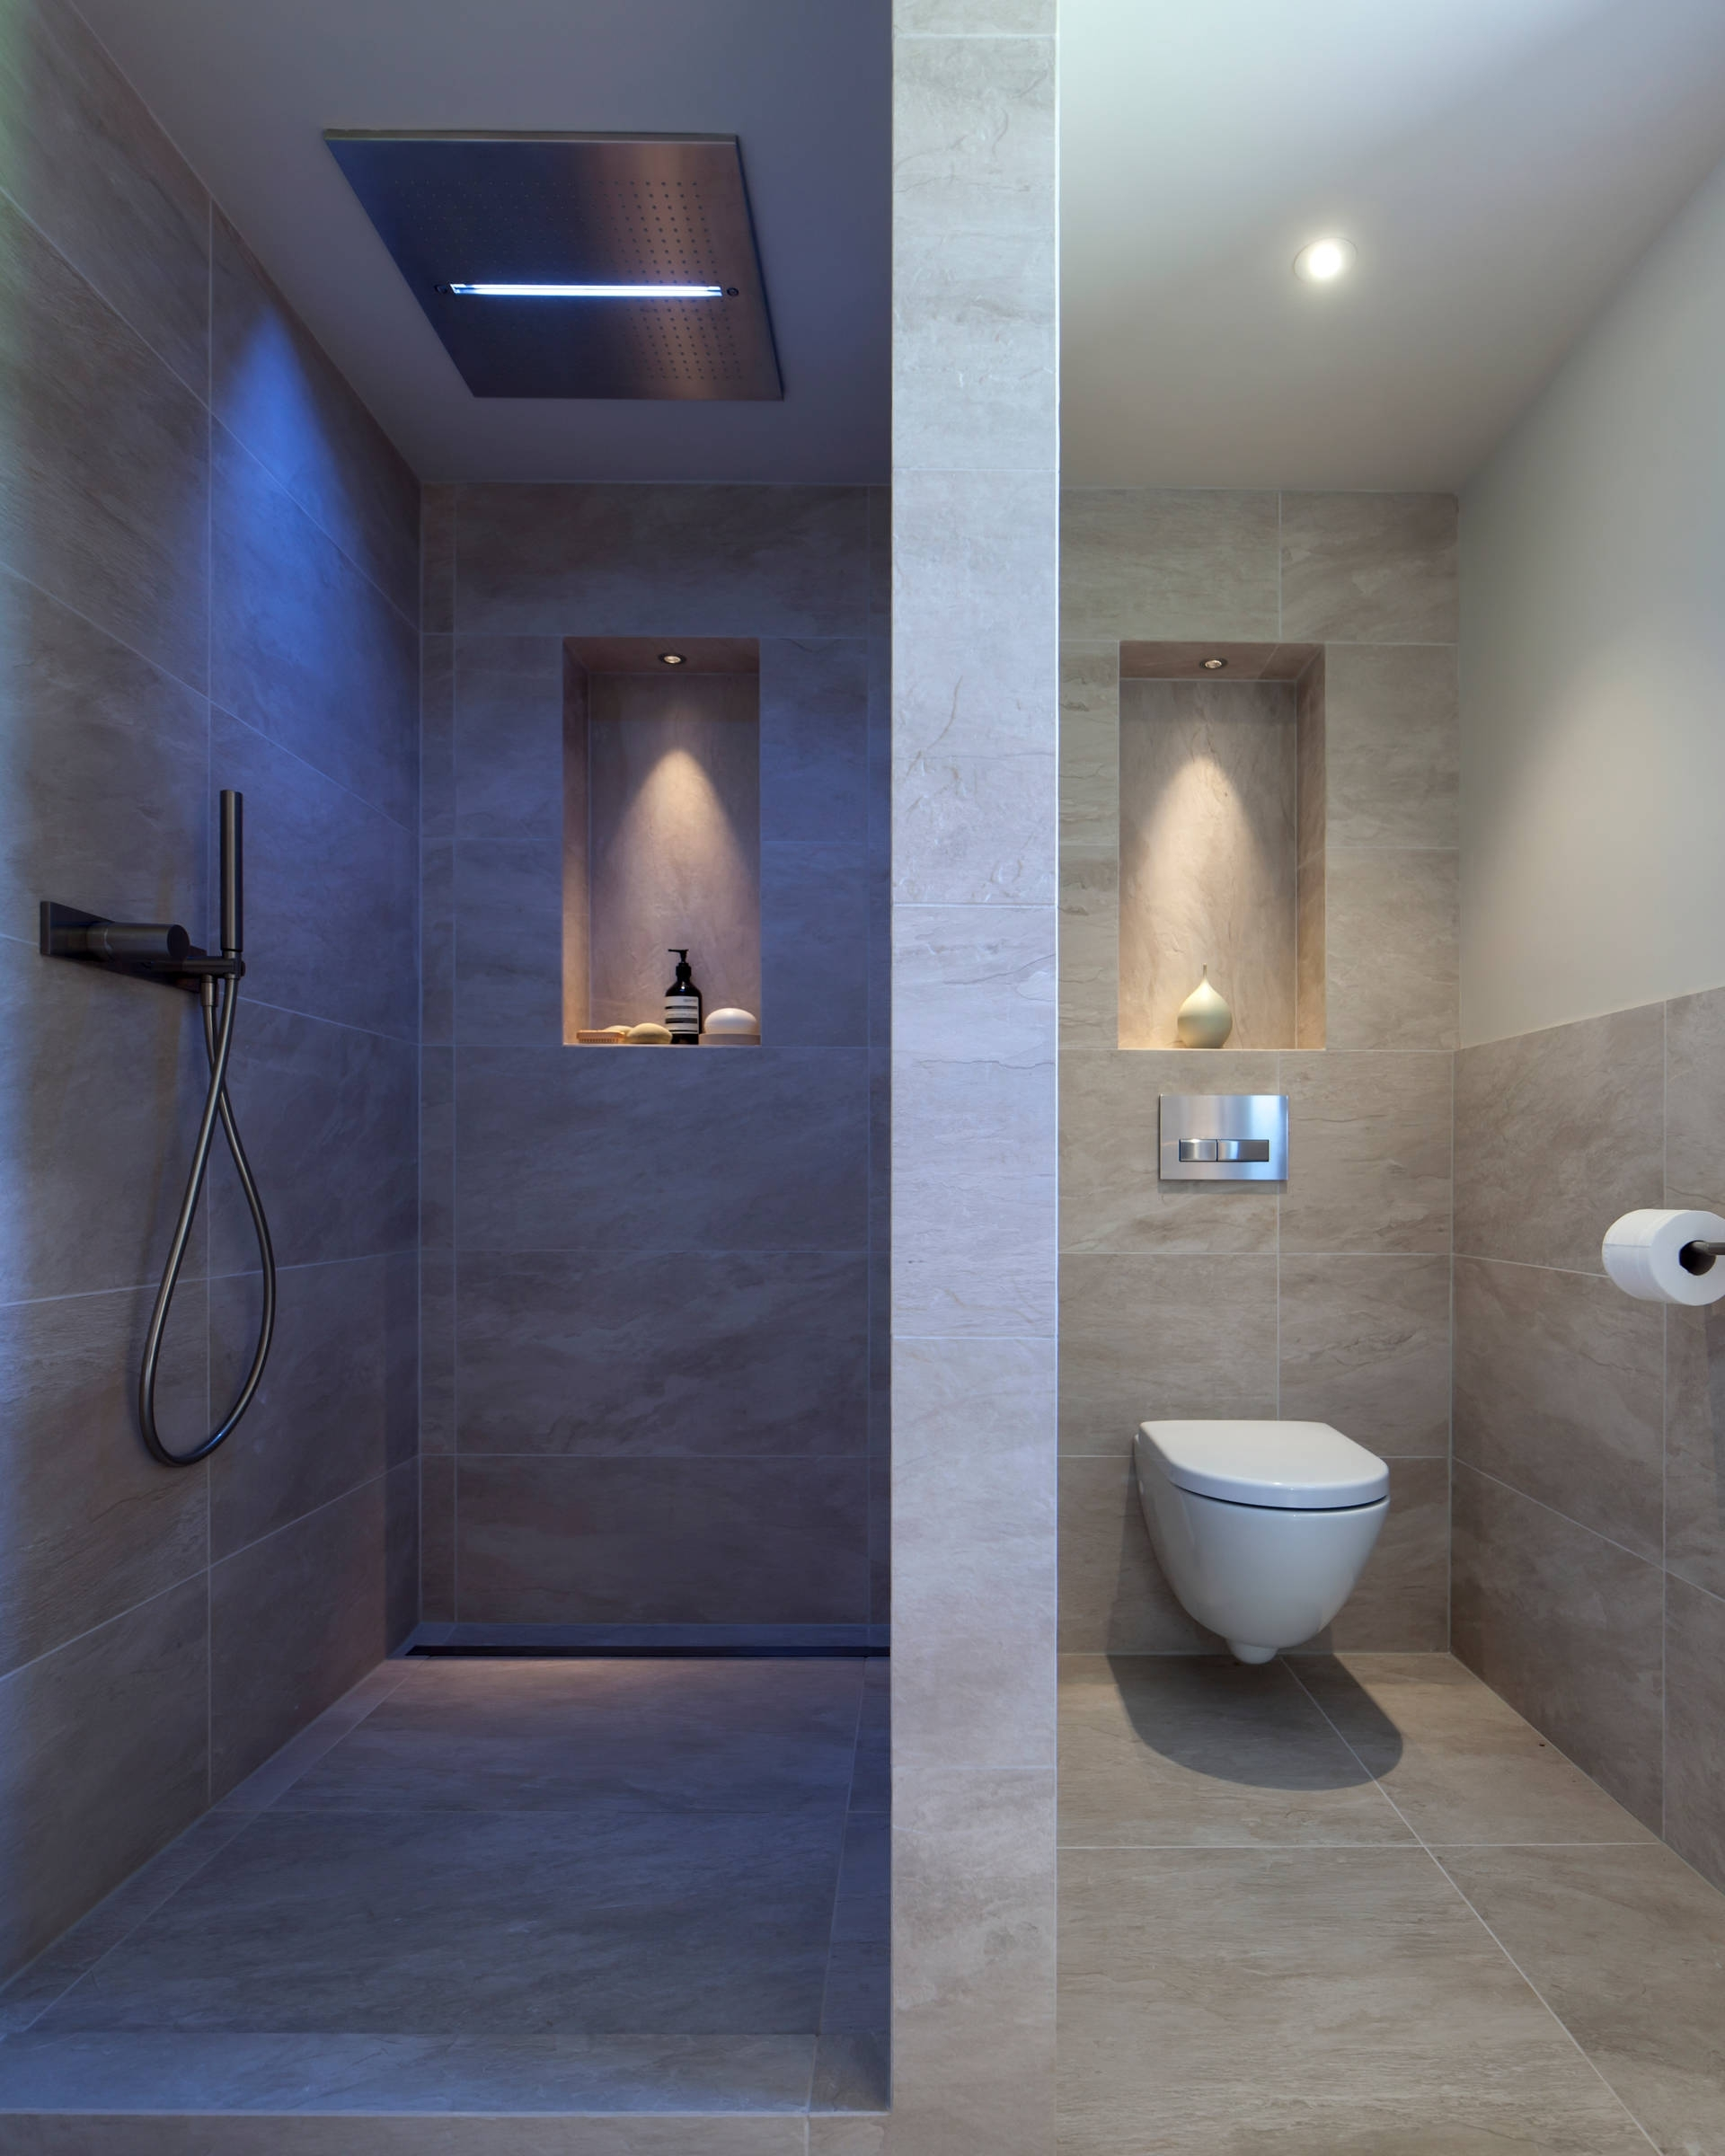 18 Beautiful Bathroom Niche Pictures & Ideas | Houzz 40+ Bathroom Niche Design Ideas